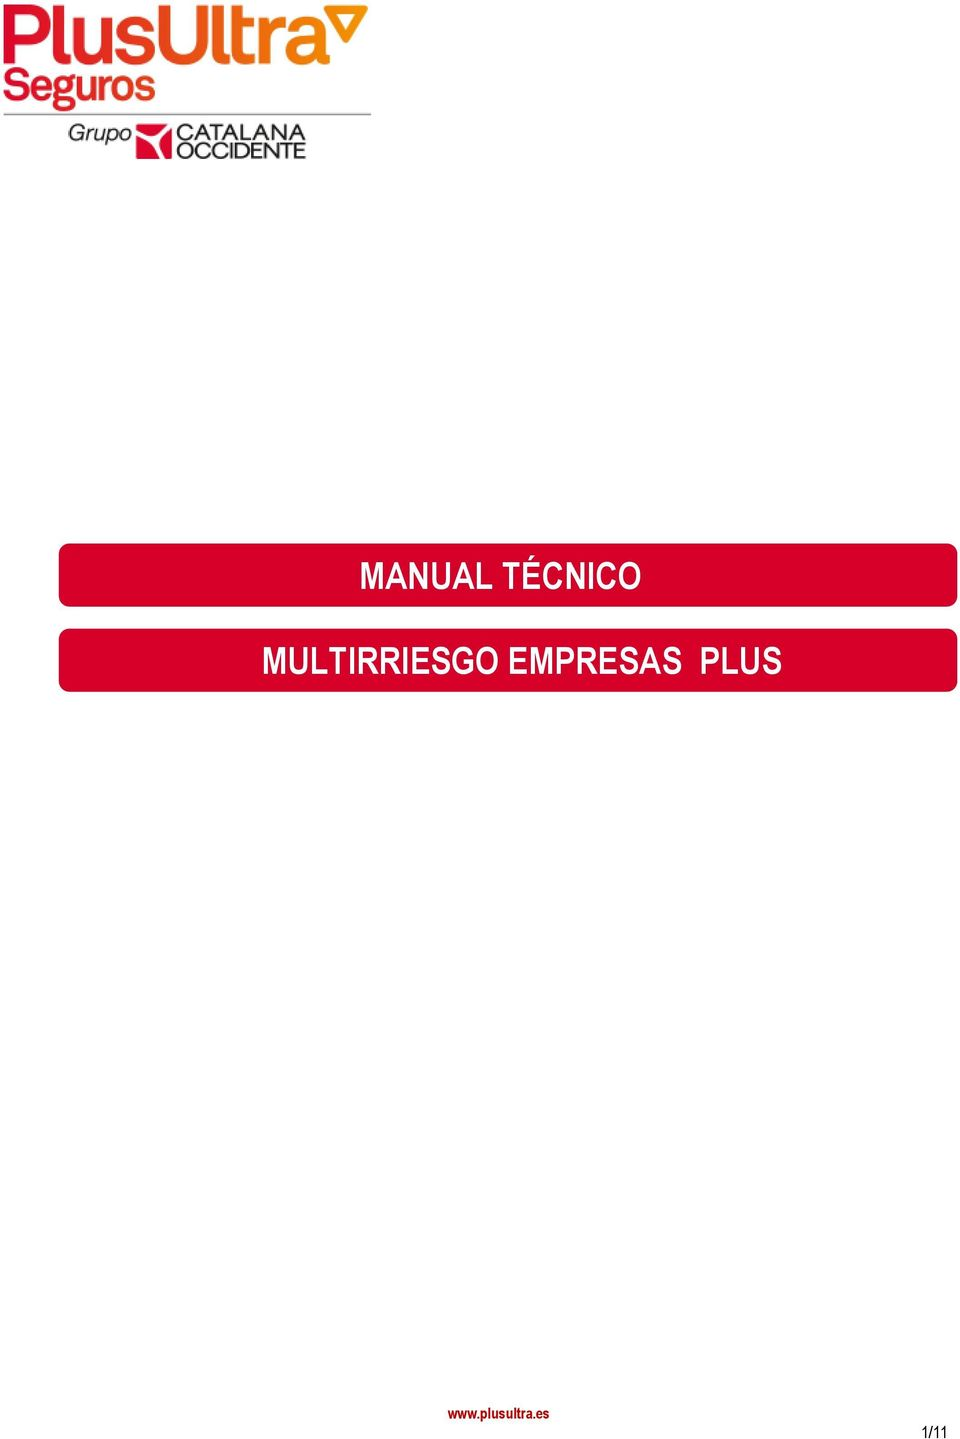 Plus Ultra Seguros Hogar Telefono Manual TÉcnico Multirriesgo Empresas Plus 1 11 Pdf